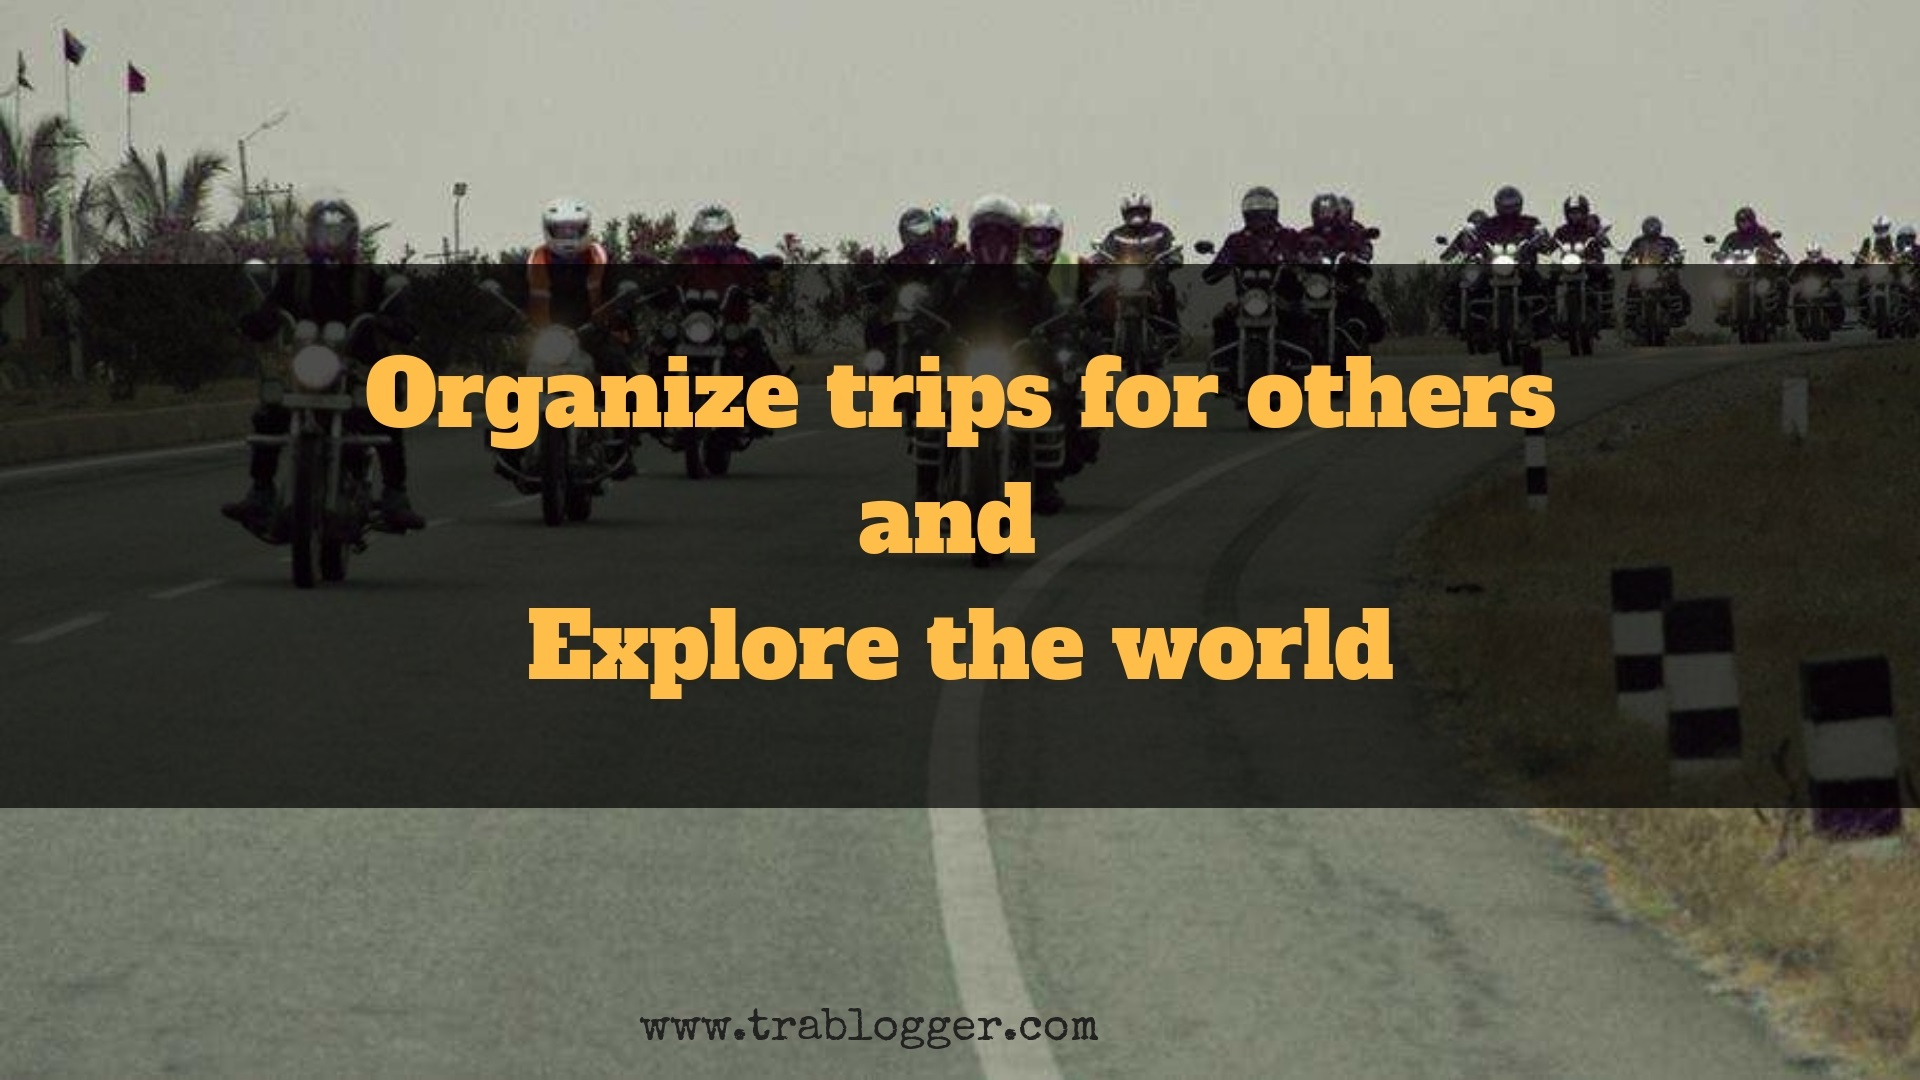 Organize trips for others and Explore the world